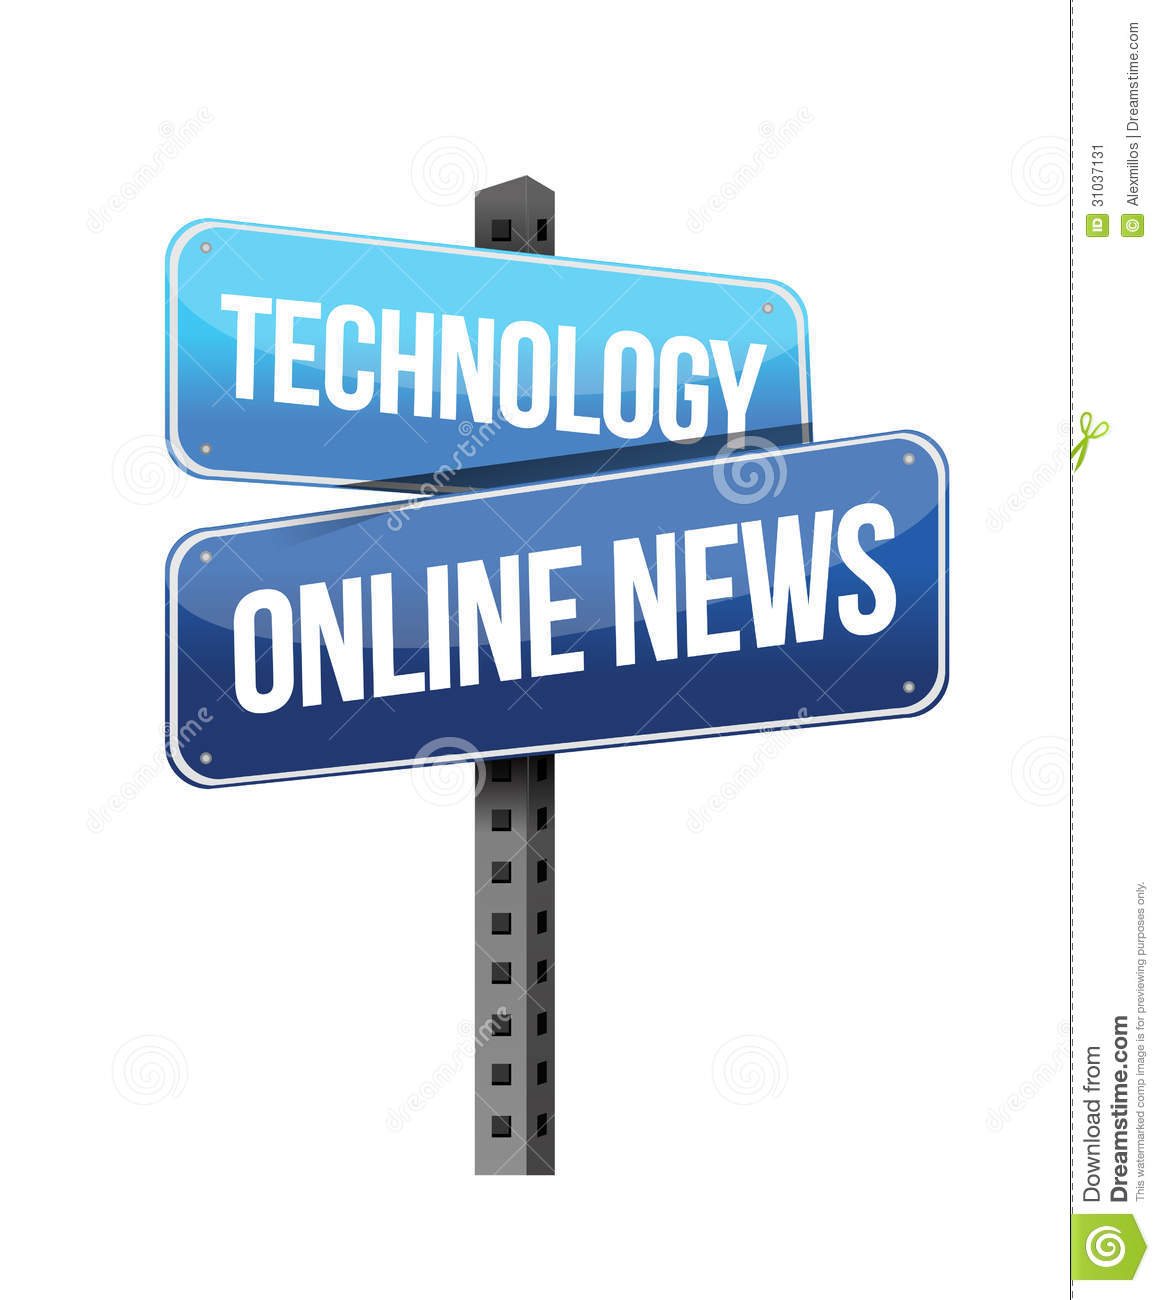 technology sign road illustration background preview